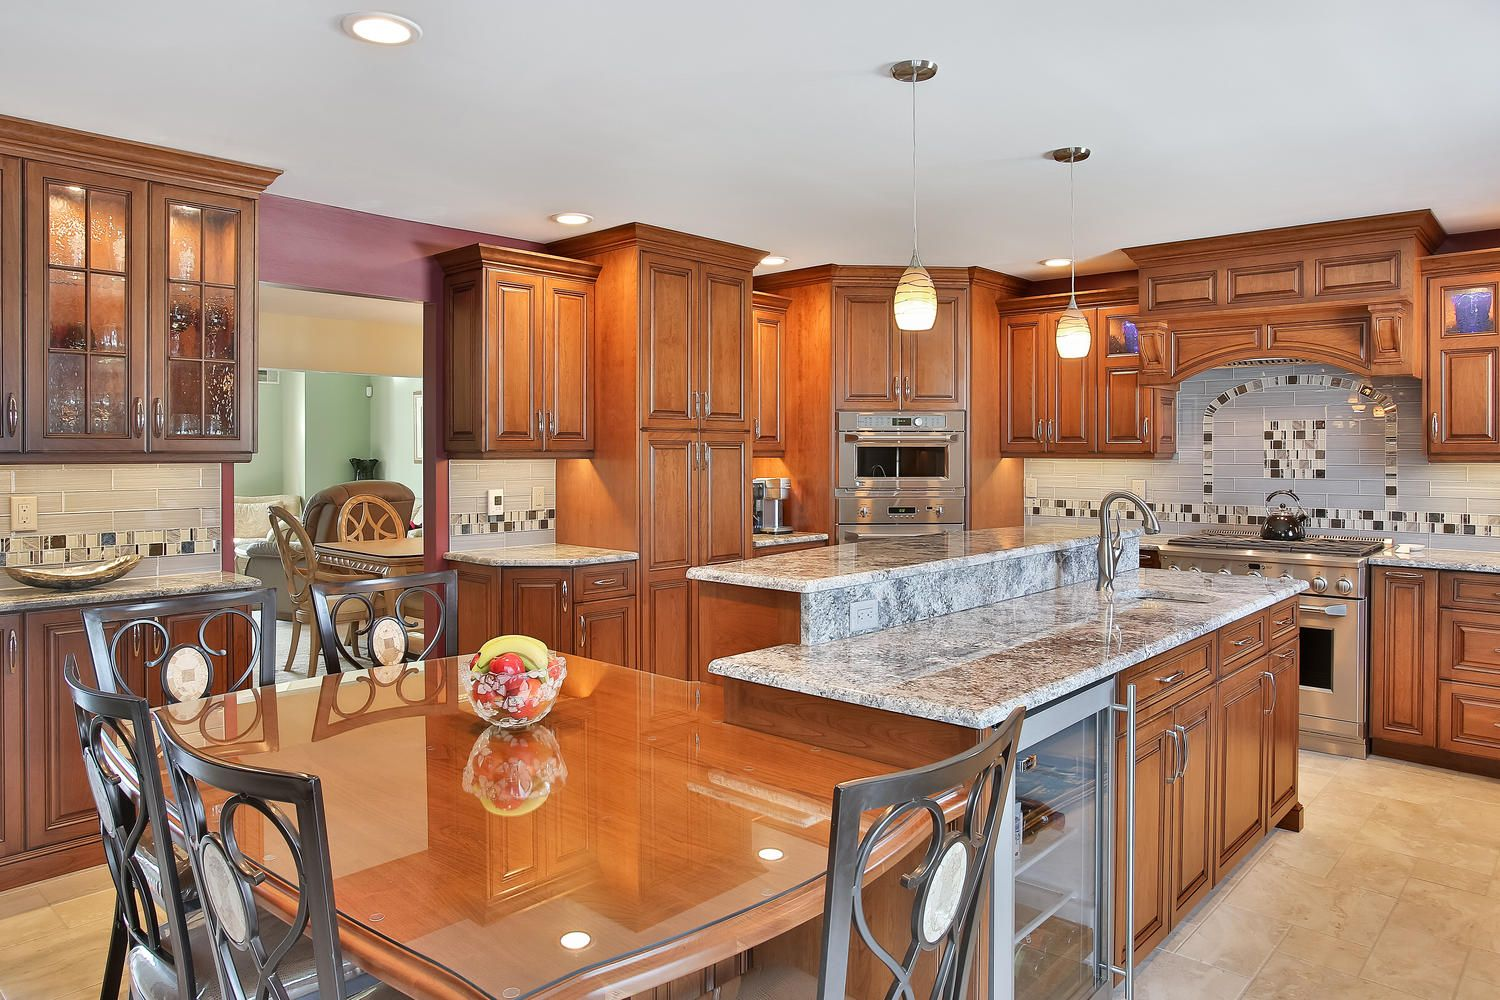 Stunning Cherry Kitchen Brick New Jerseydesign Line Kitchens Captivating Design Line Kitchens 2018